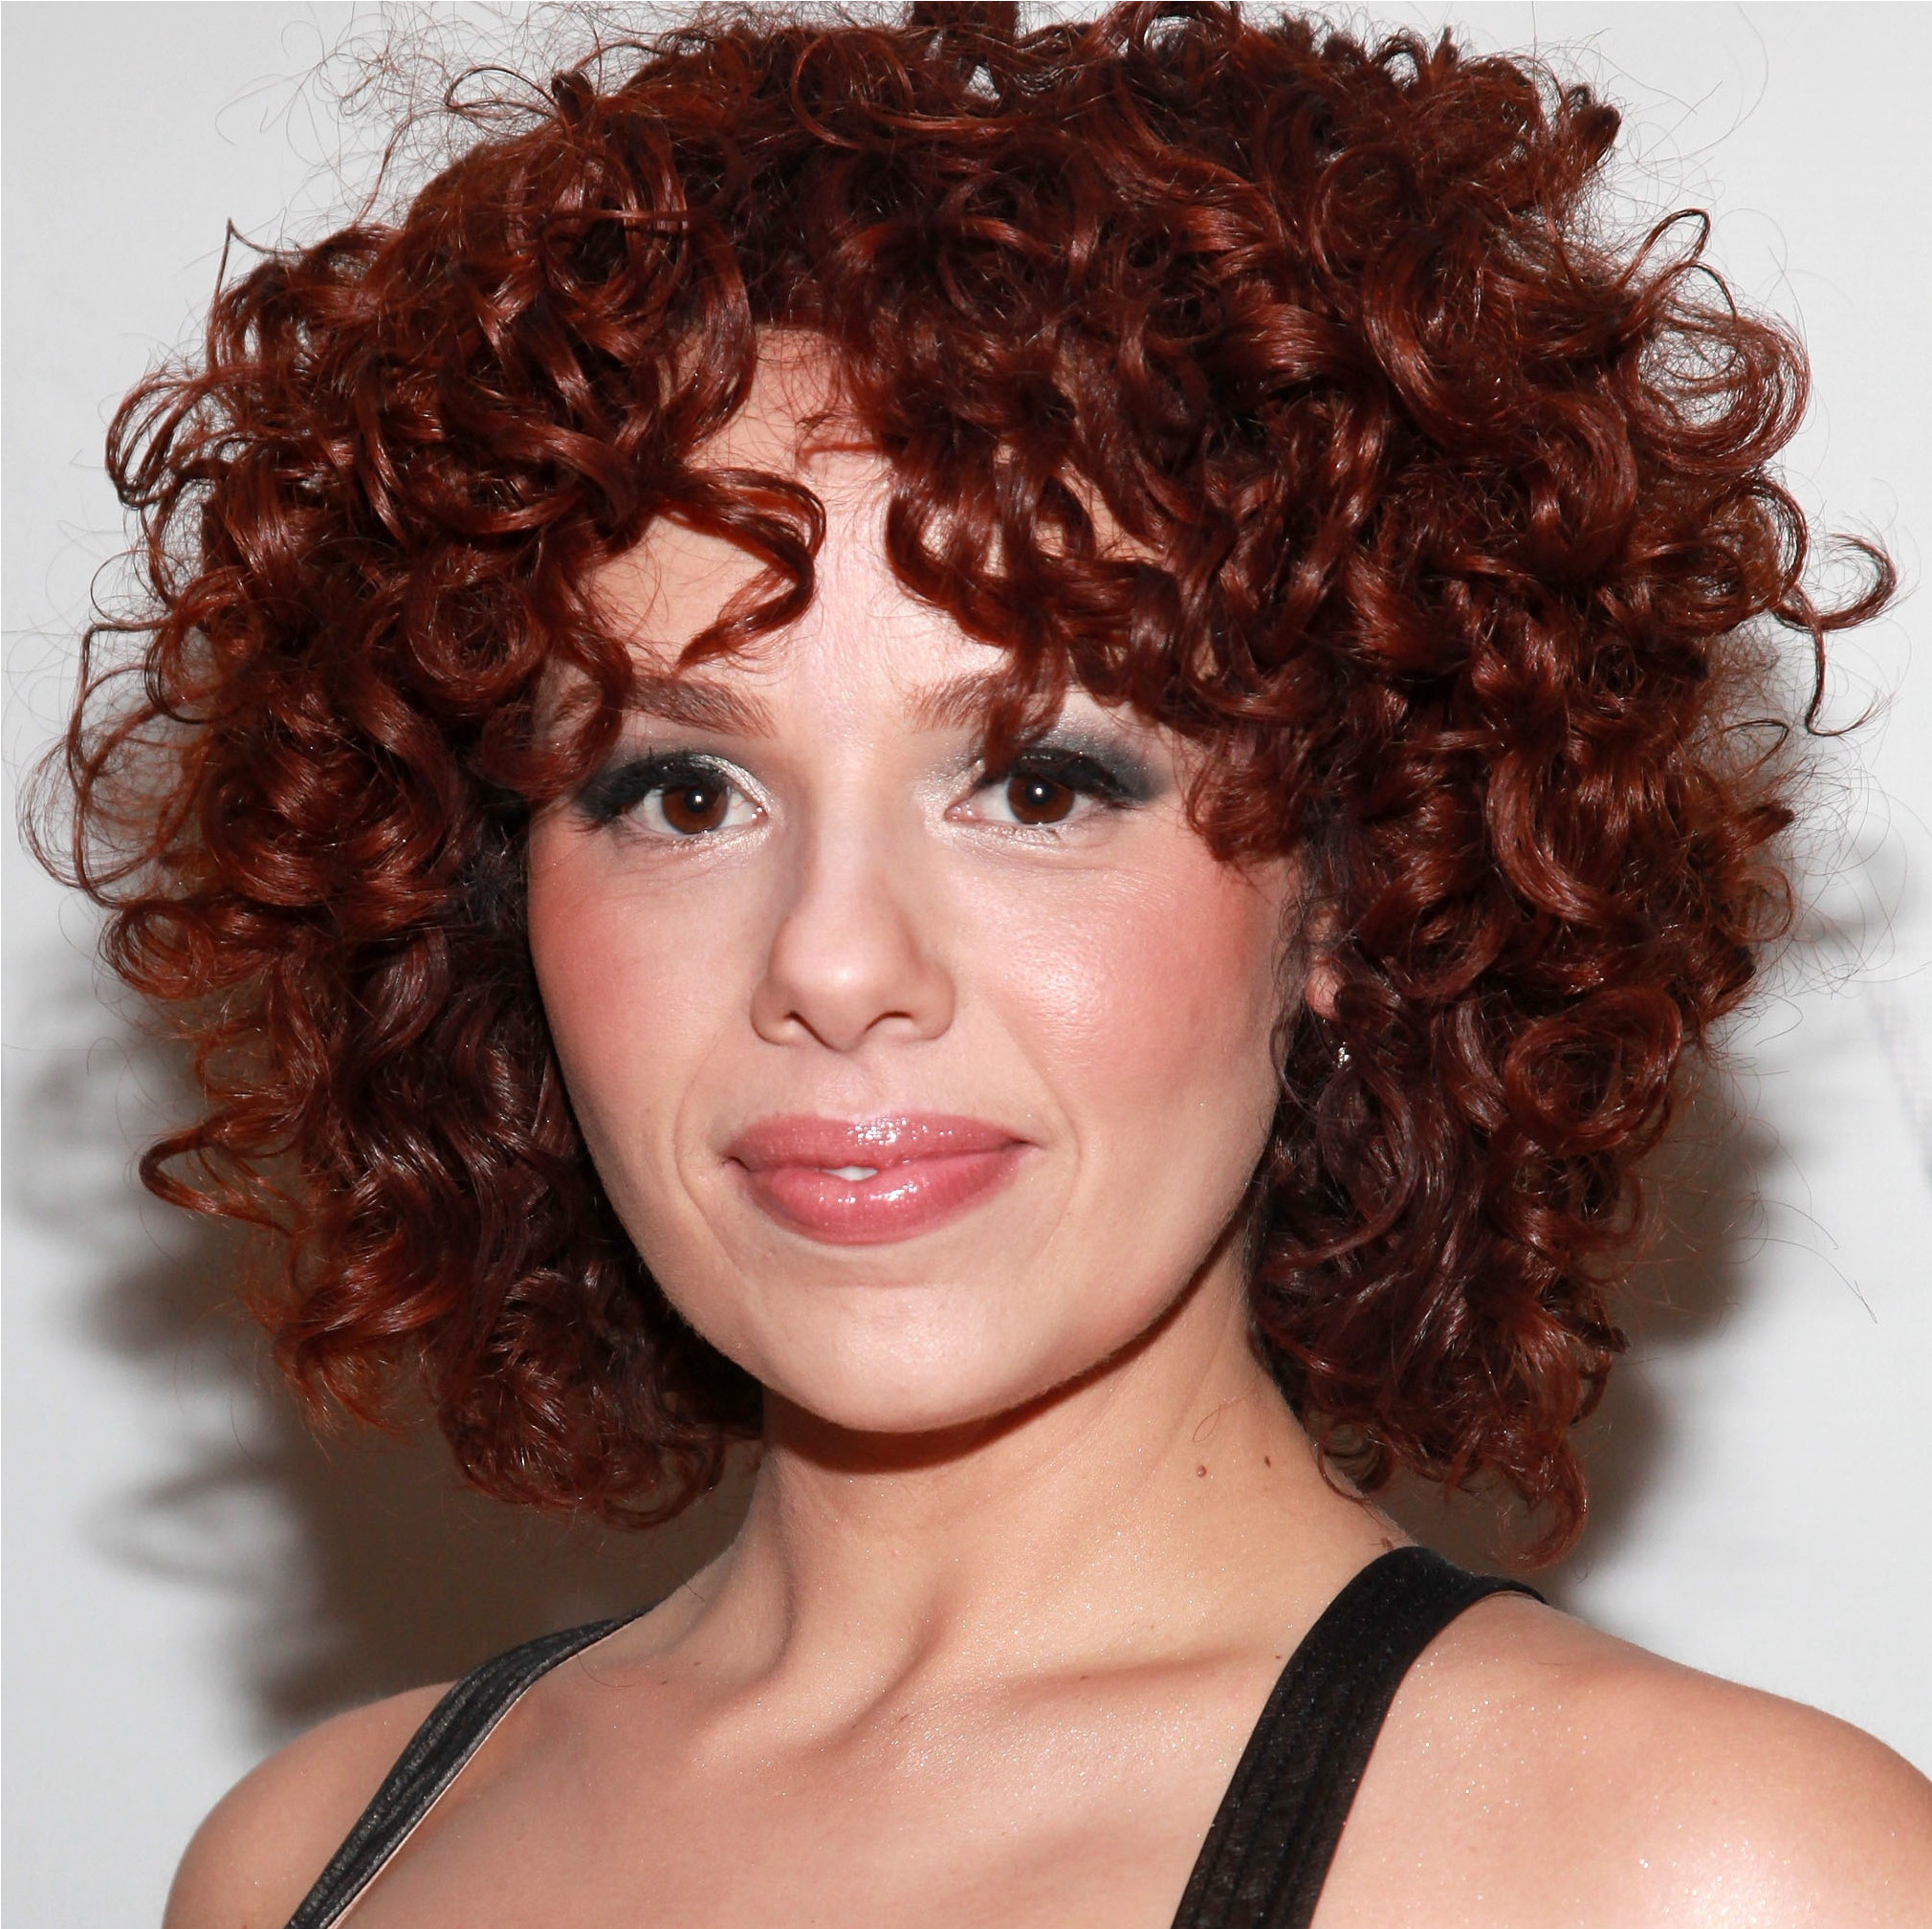 Best ideas about Haircuts For Naturally Curly Hair . Save or Pin Hairstyles for Short Curly Hair Your Beauty 411 Now.